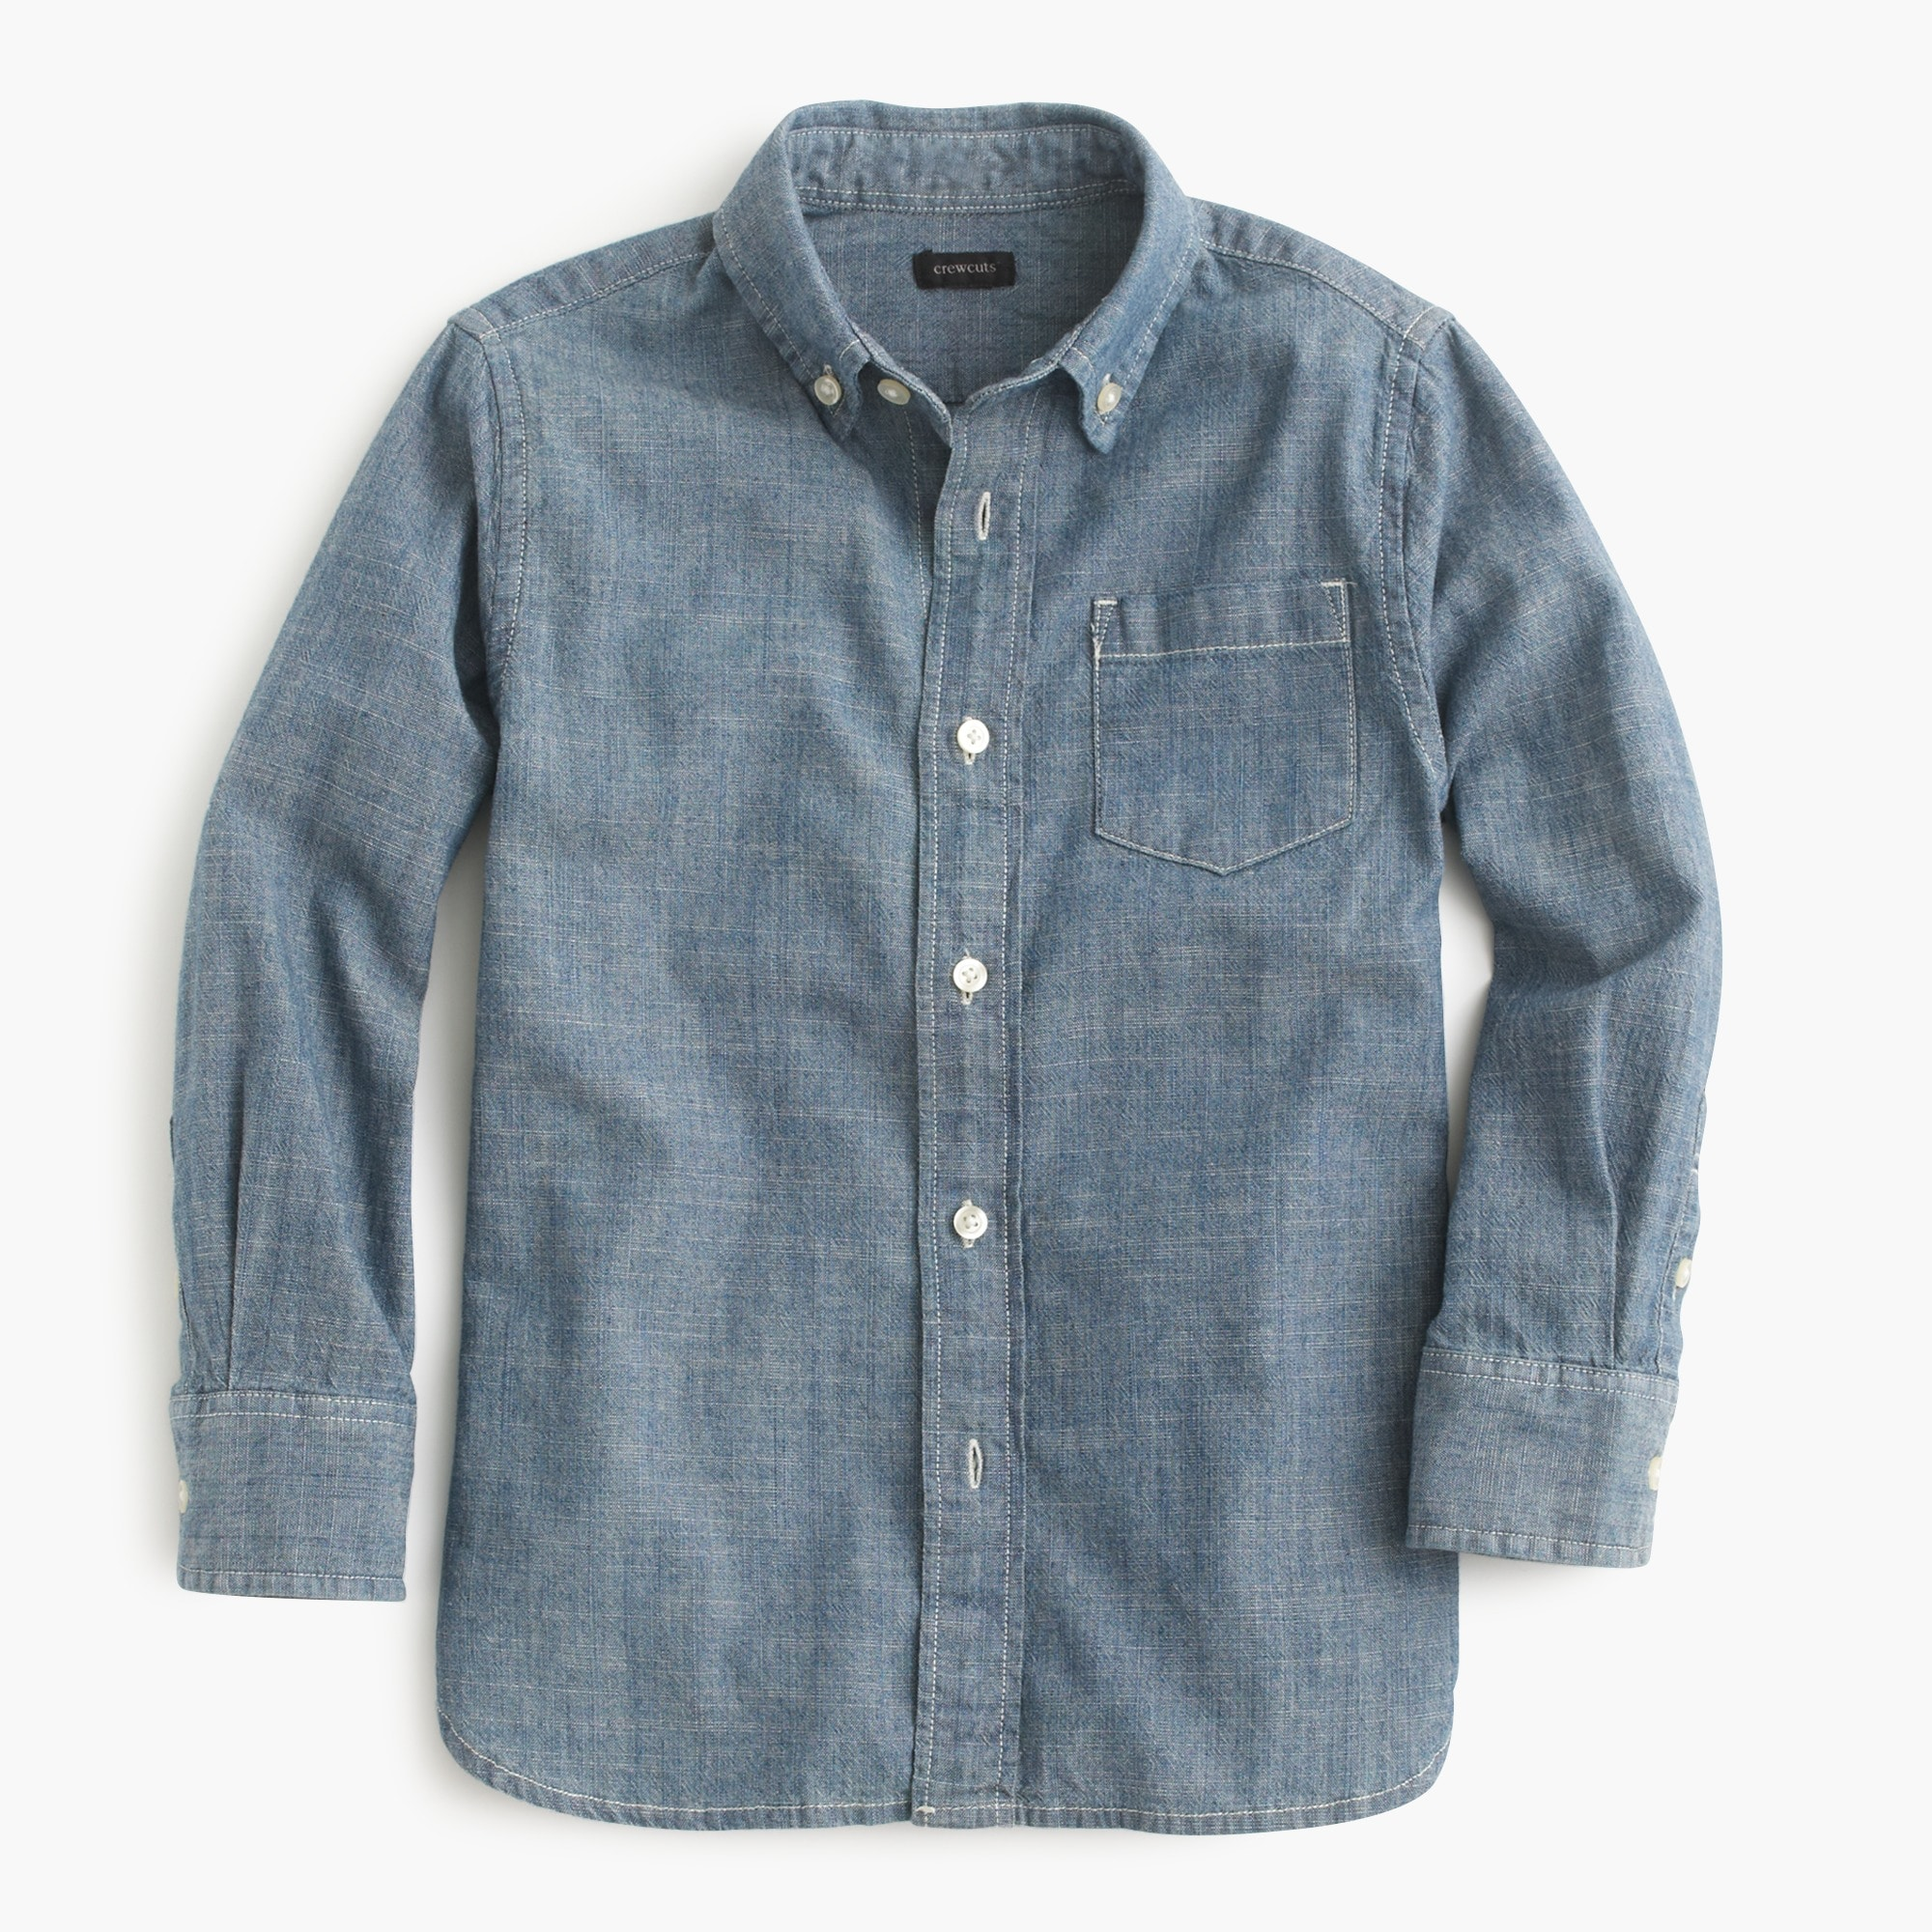 Kids' chambray shirt boy shirts c